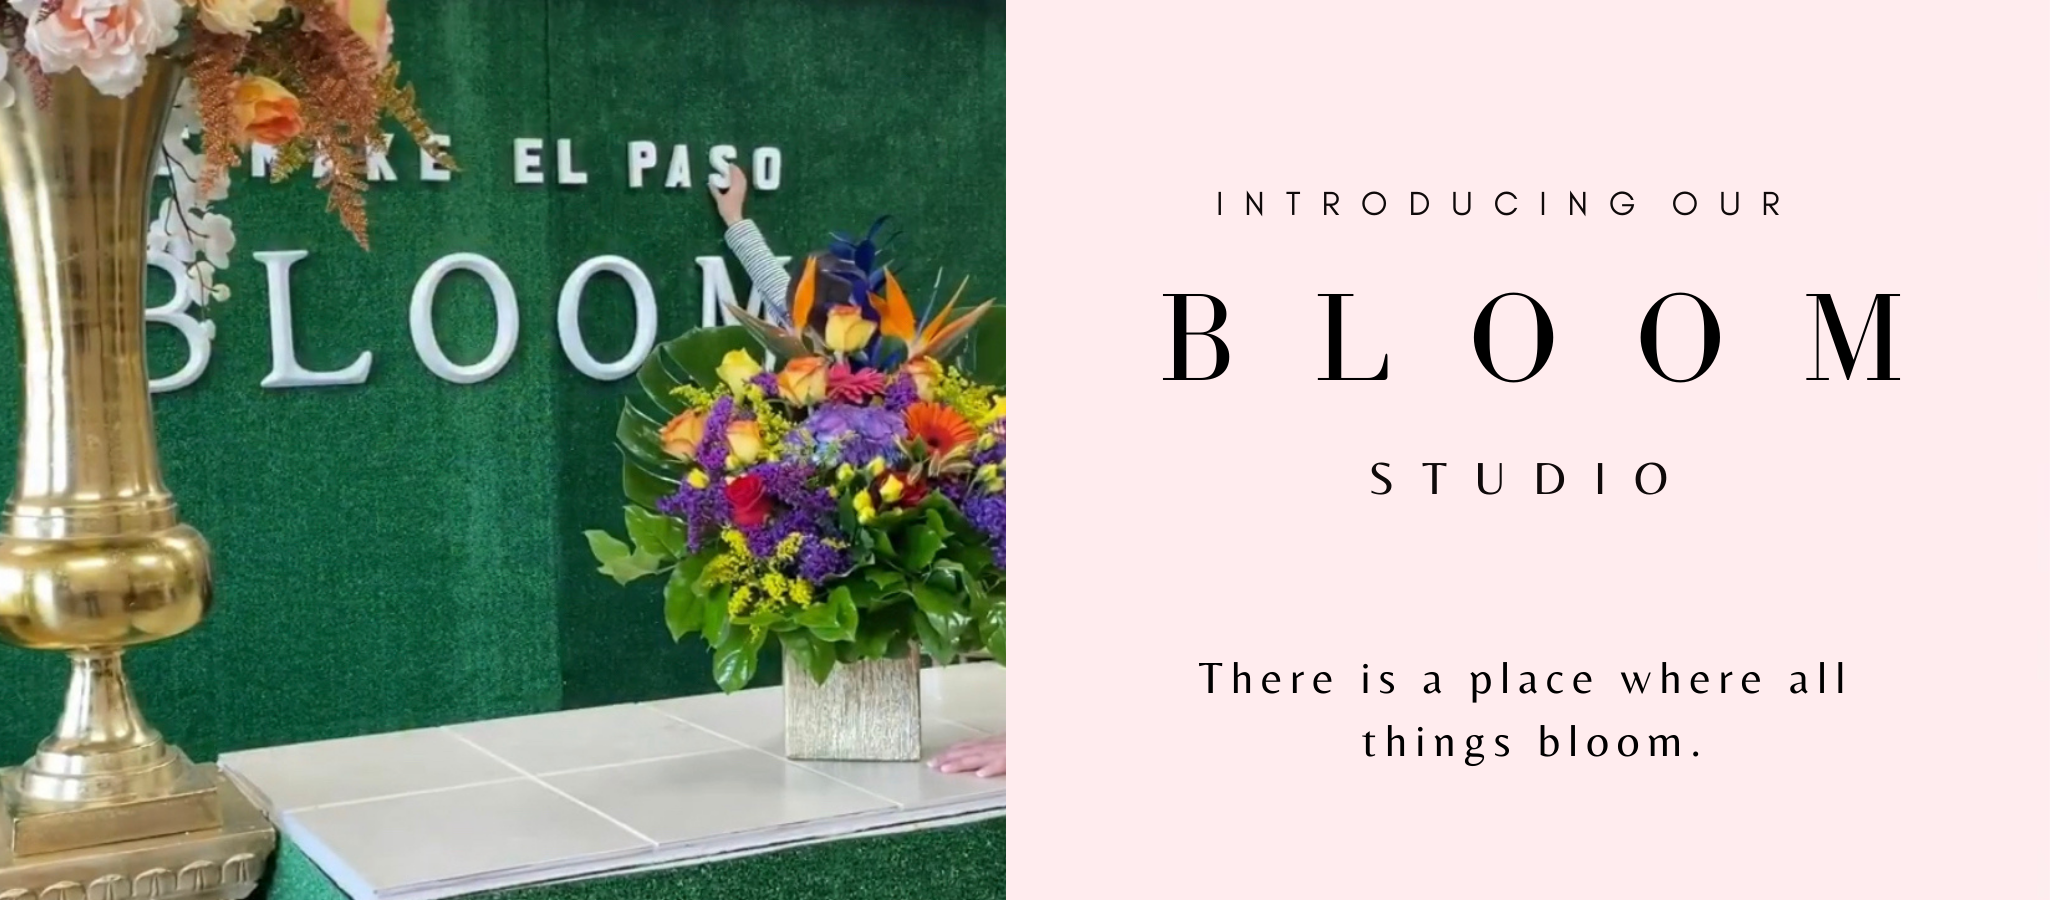 bloom-studio-angies-floral-designs-el-paso-texas-79912-.png